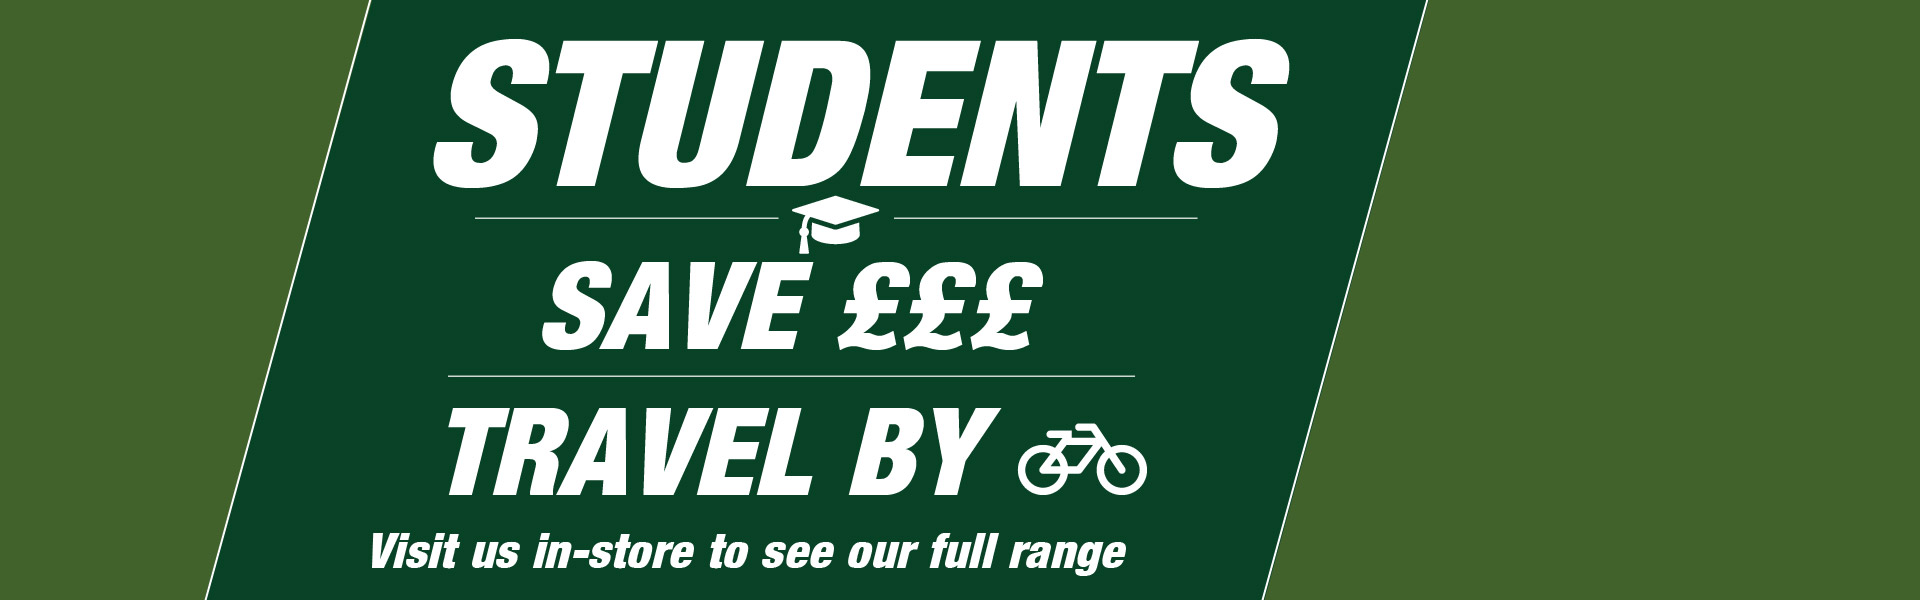 Students - Save £££, Travel By Bike